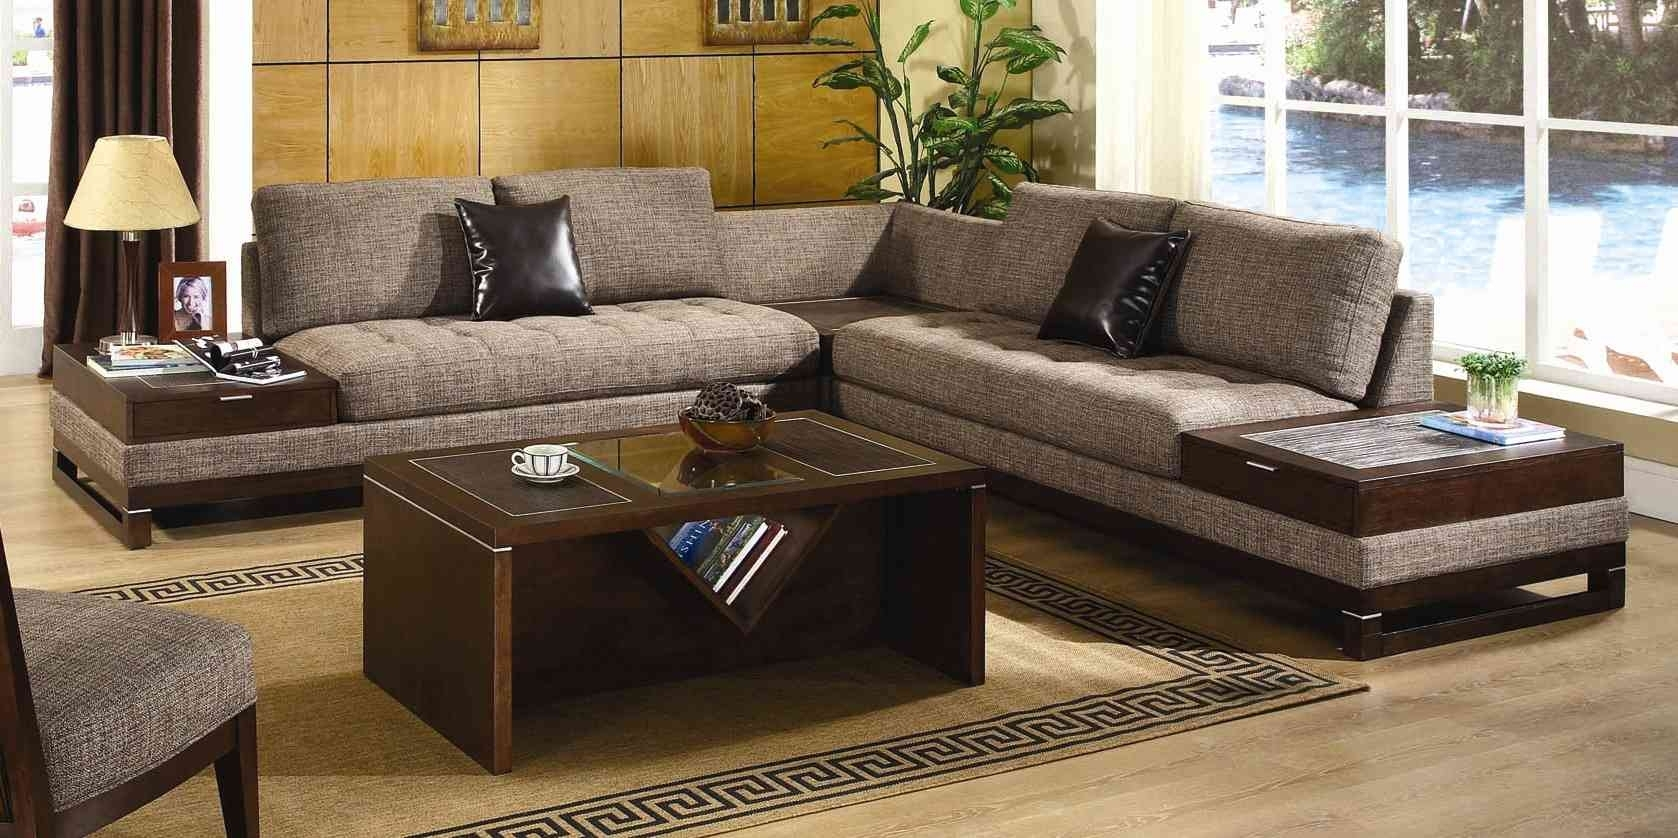 Furniture Amazing Cheap Living Room Furniture Sets Under intended for Living Room Sets Under 500